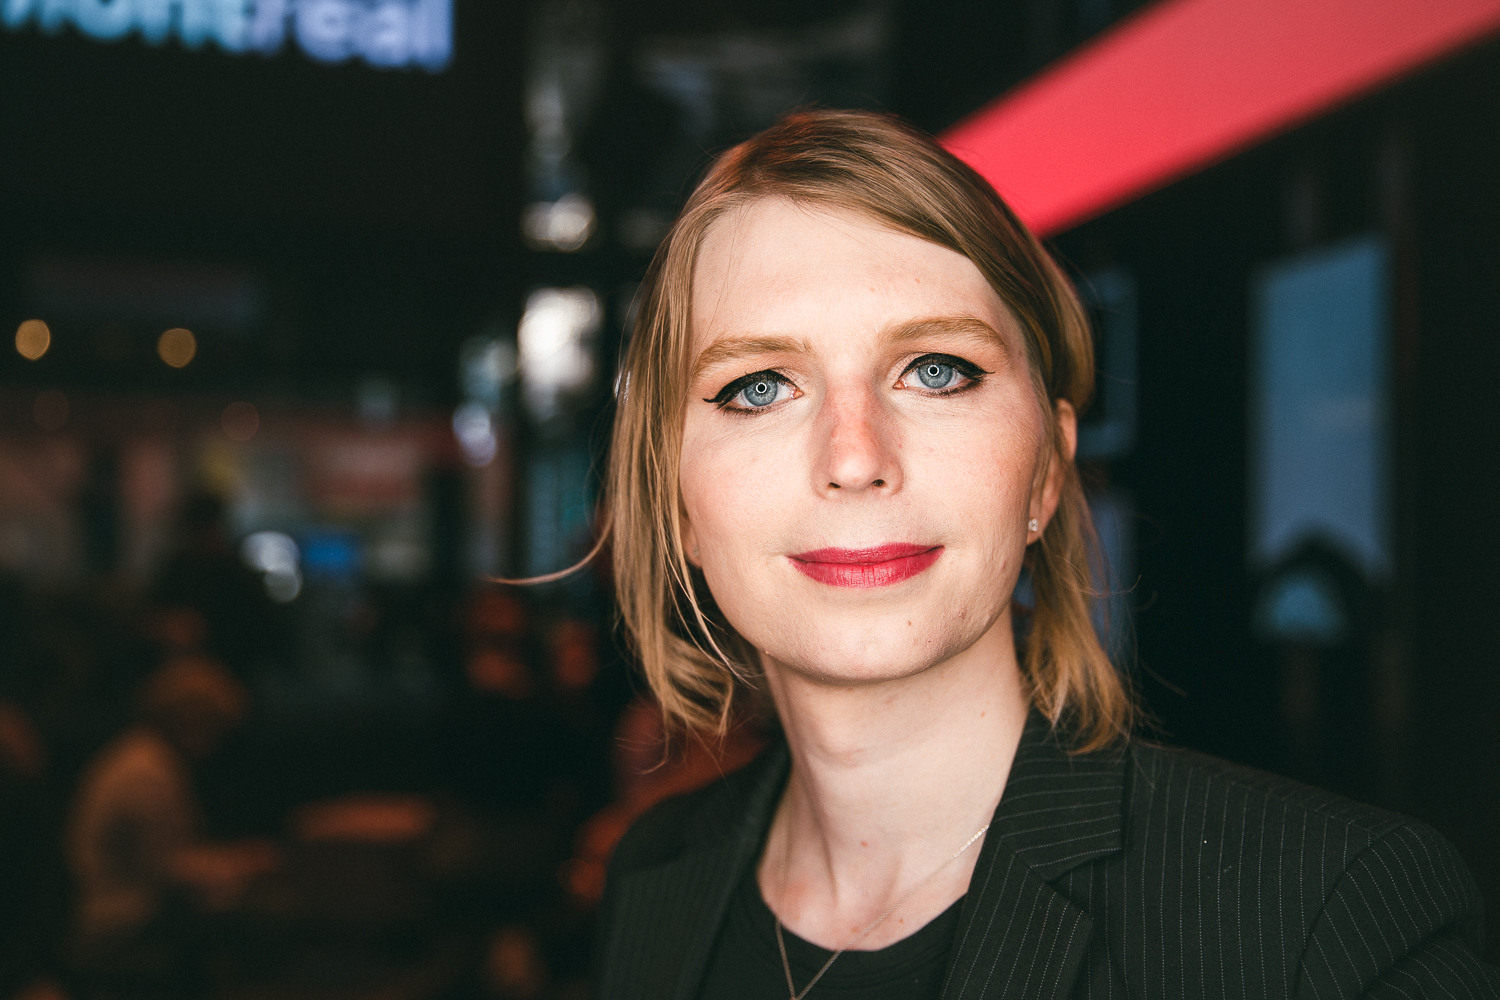 Chelsea Manning - Photo: Myriam Baril Tessier